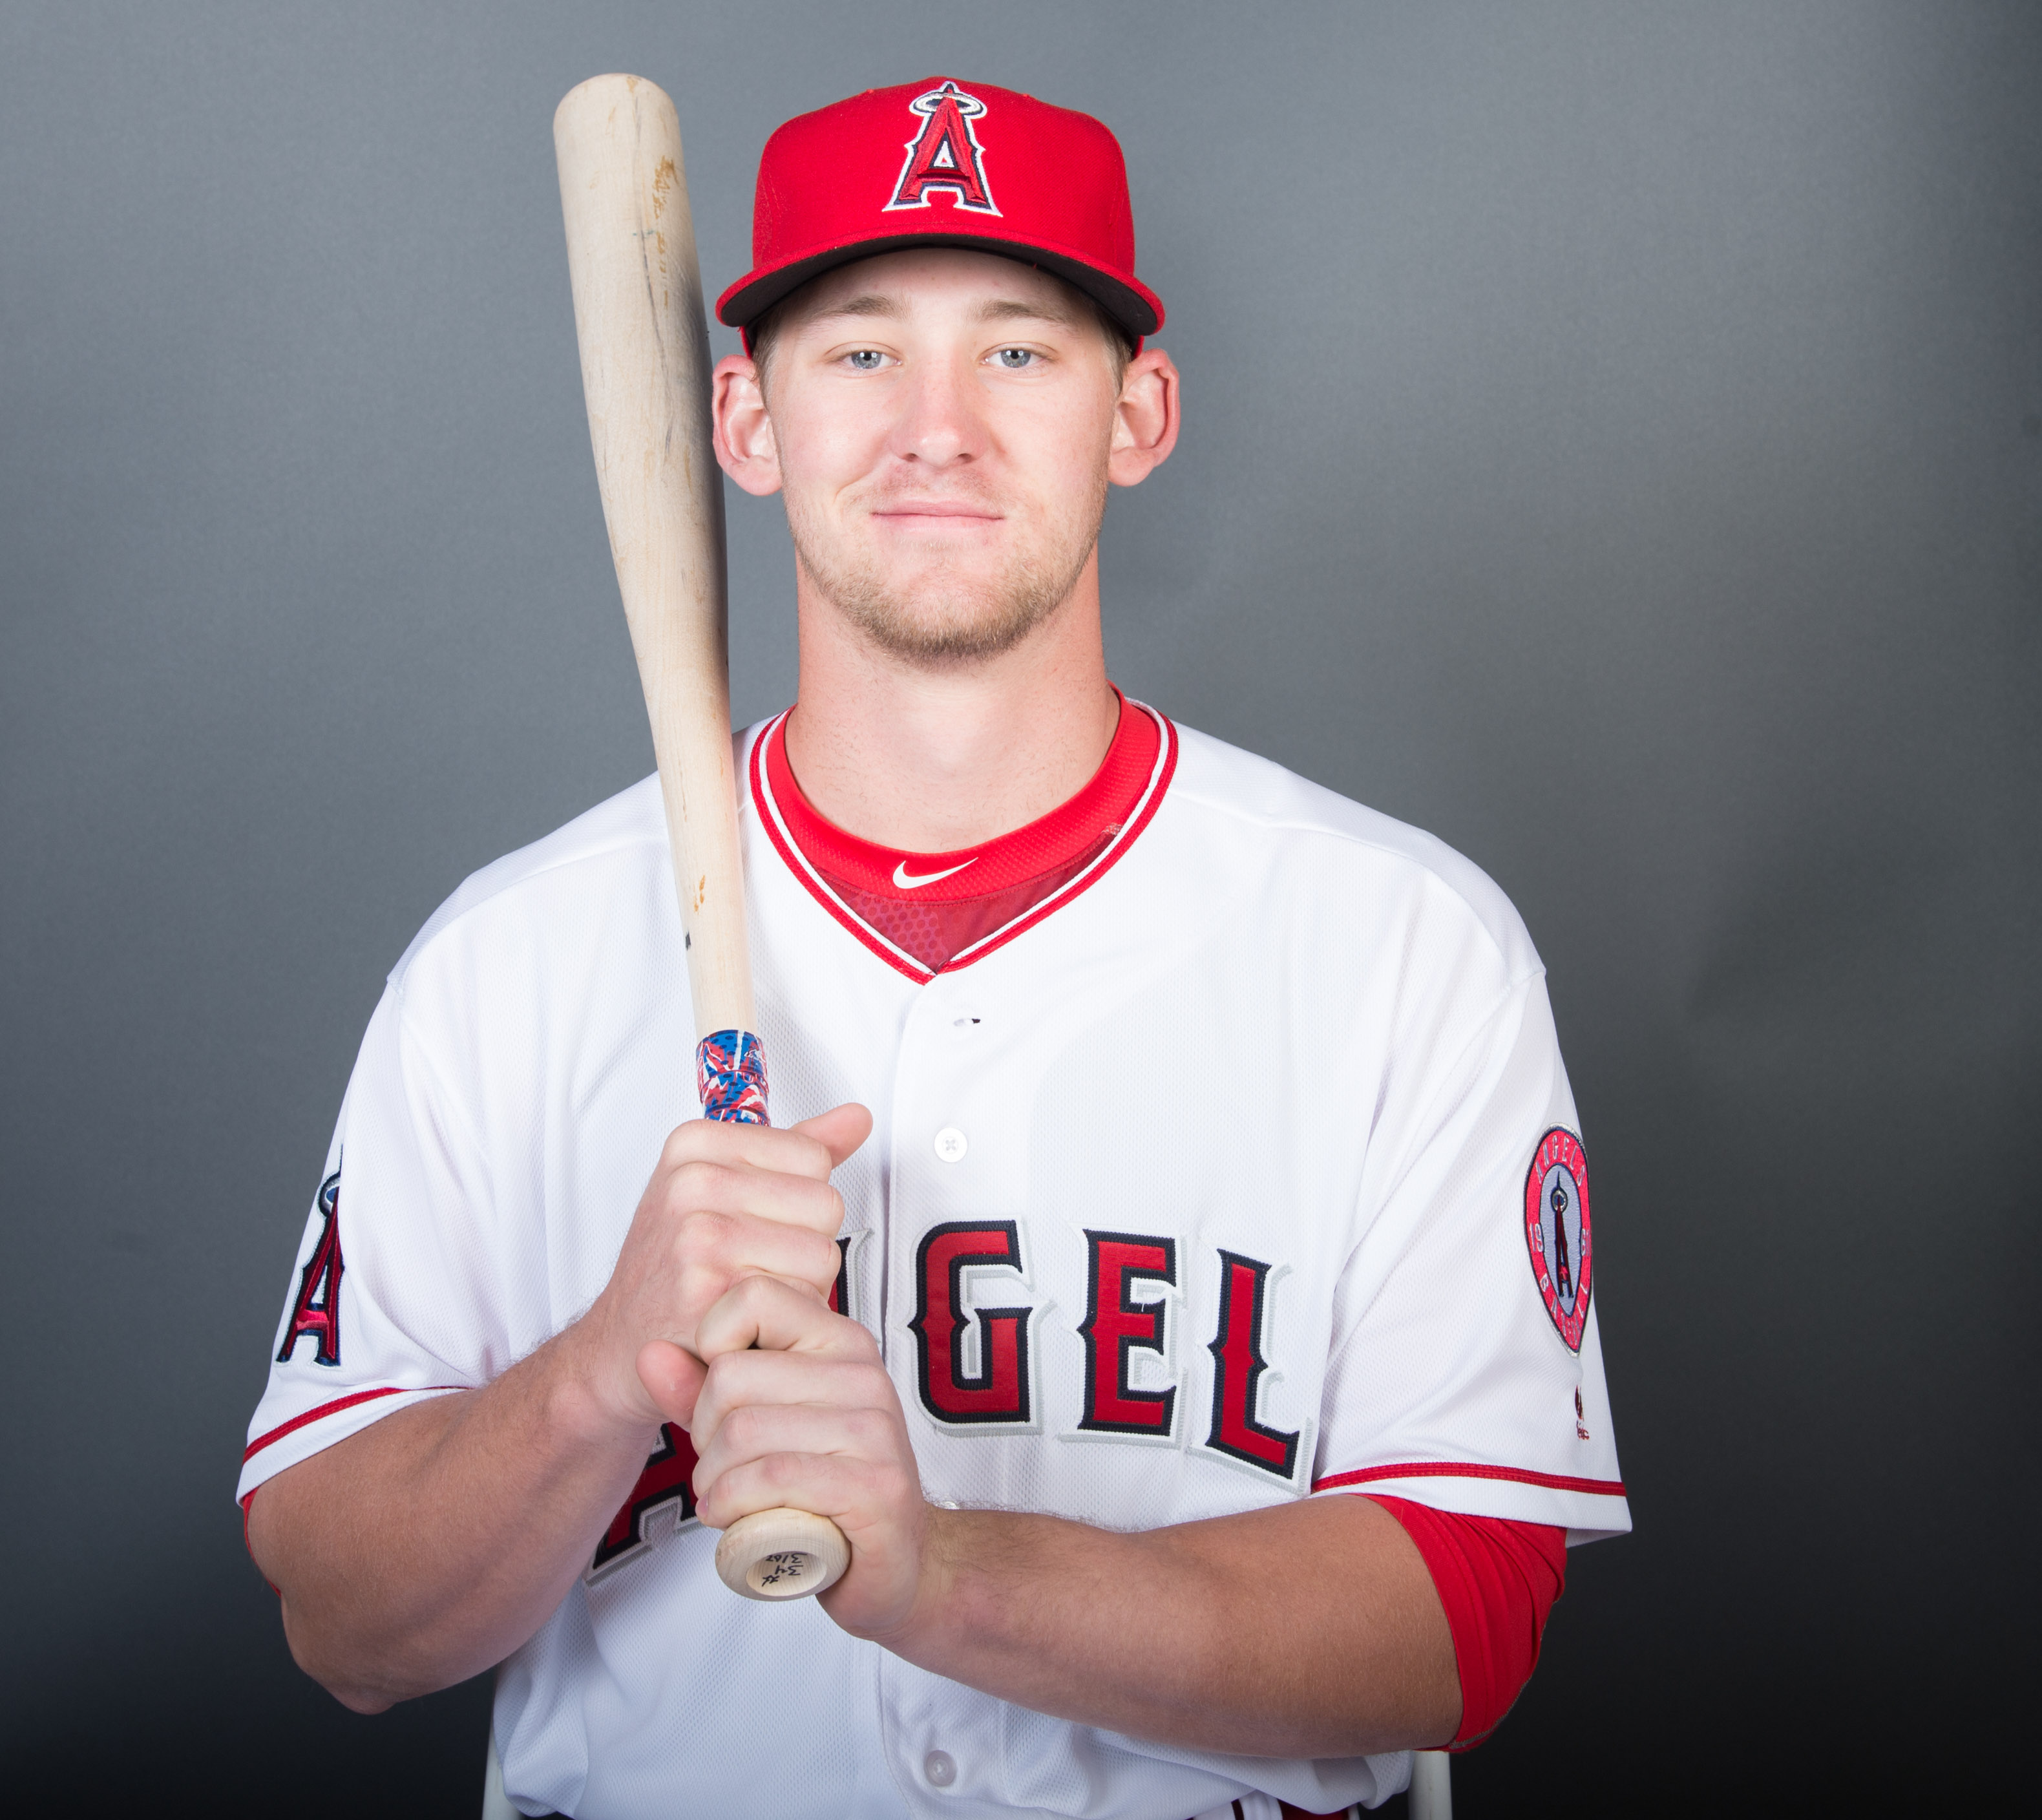 Agent 99: Taylor Ward, the Angels' first round draft selection from 2015.